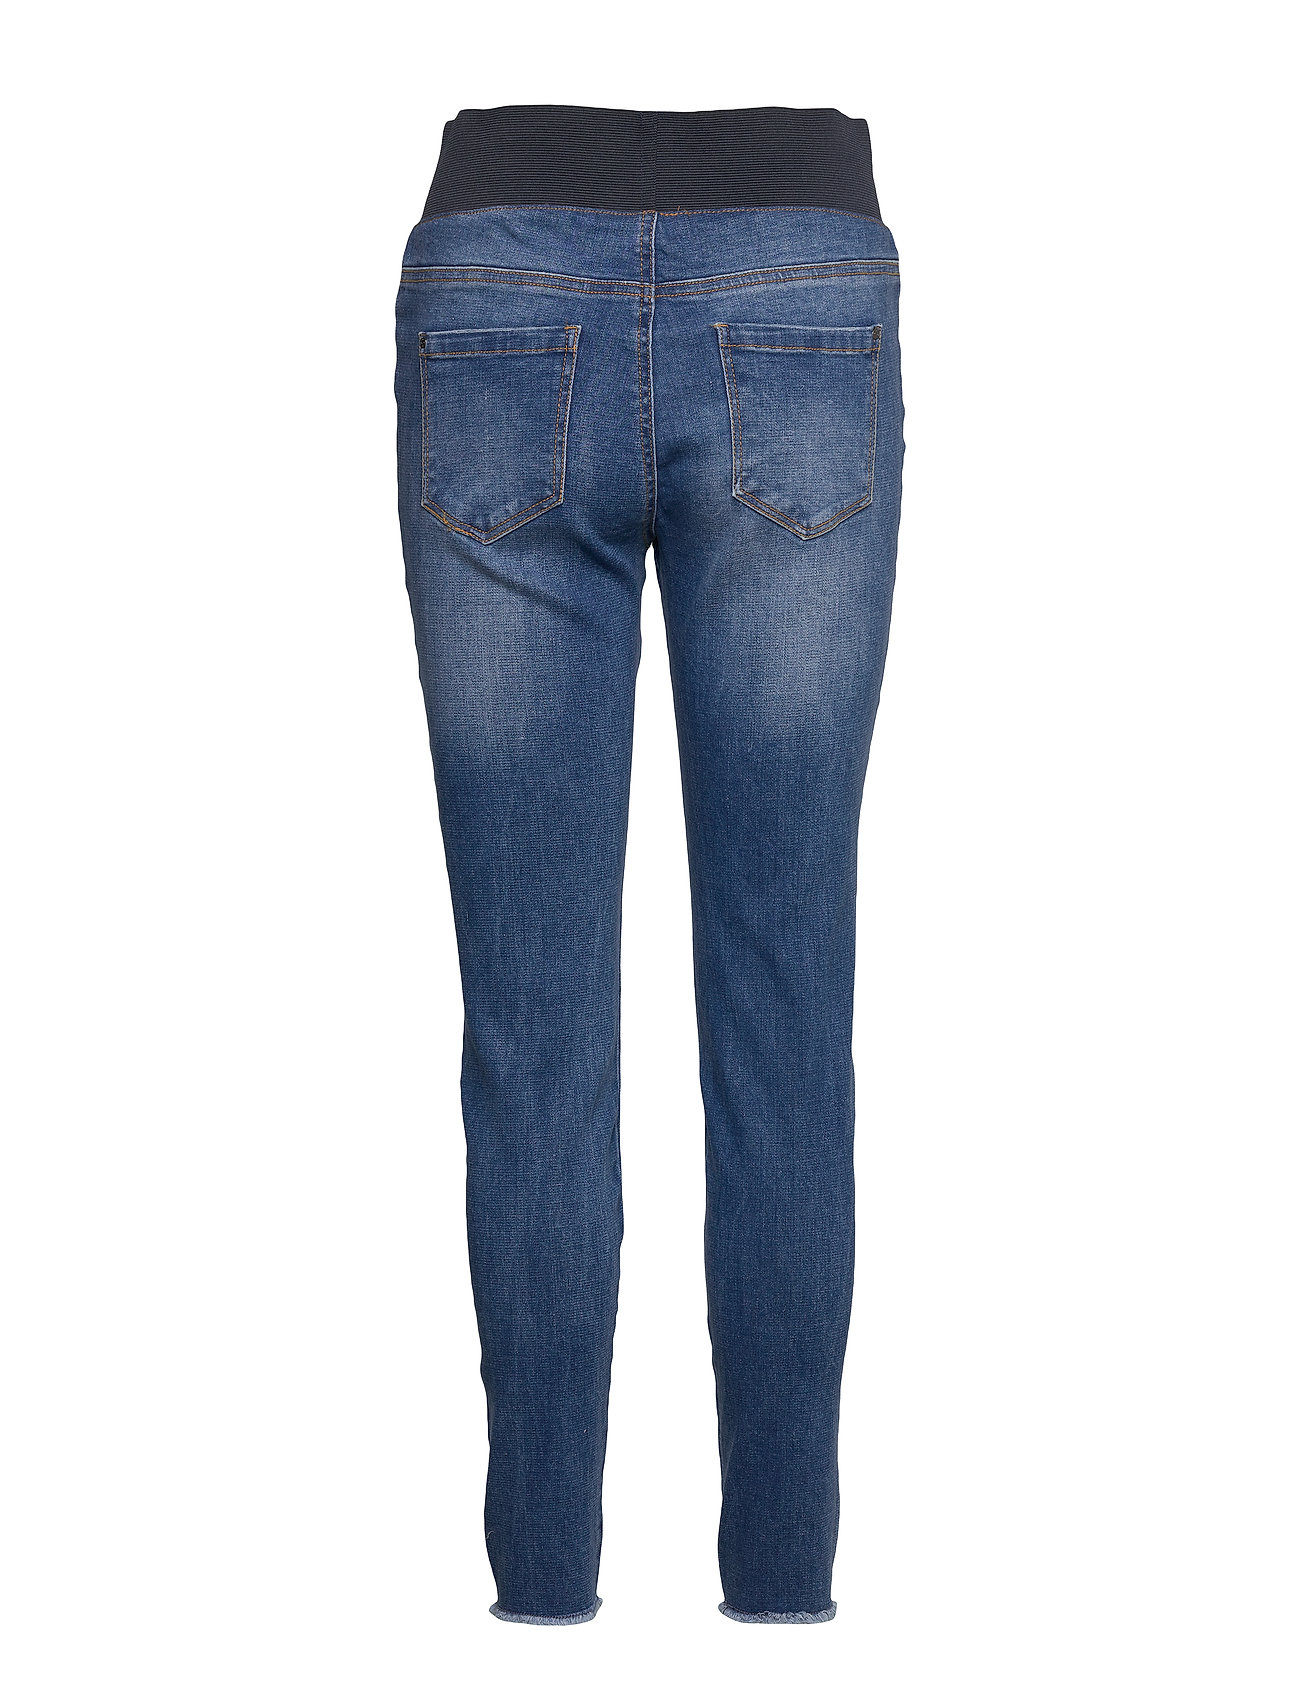 Free/quent Shantal-pa-ankle-broken - Jeans